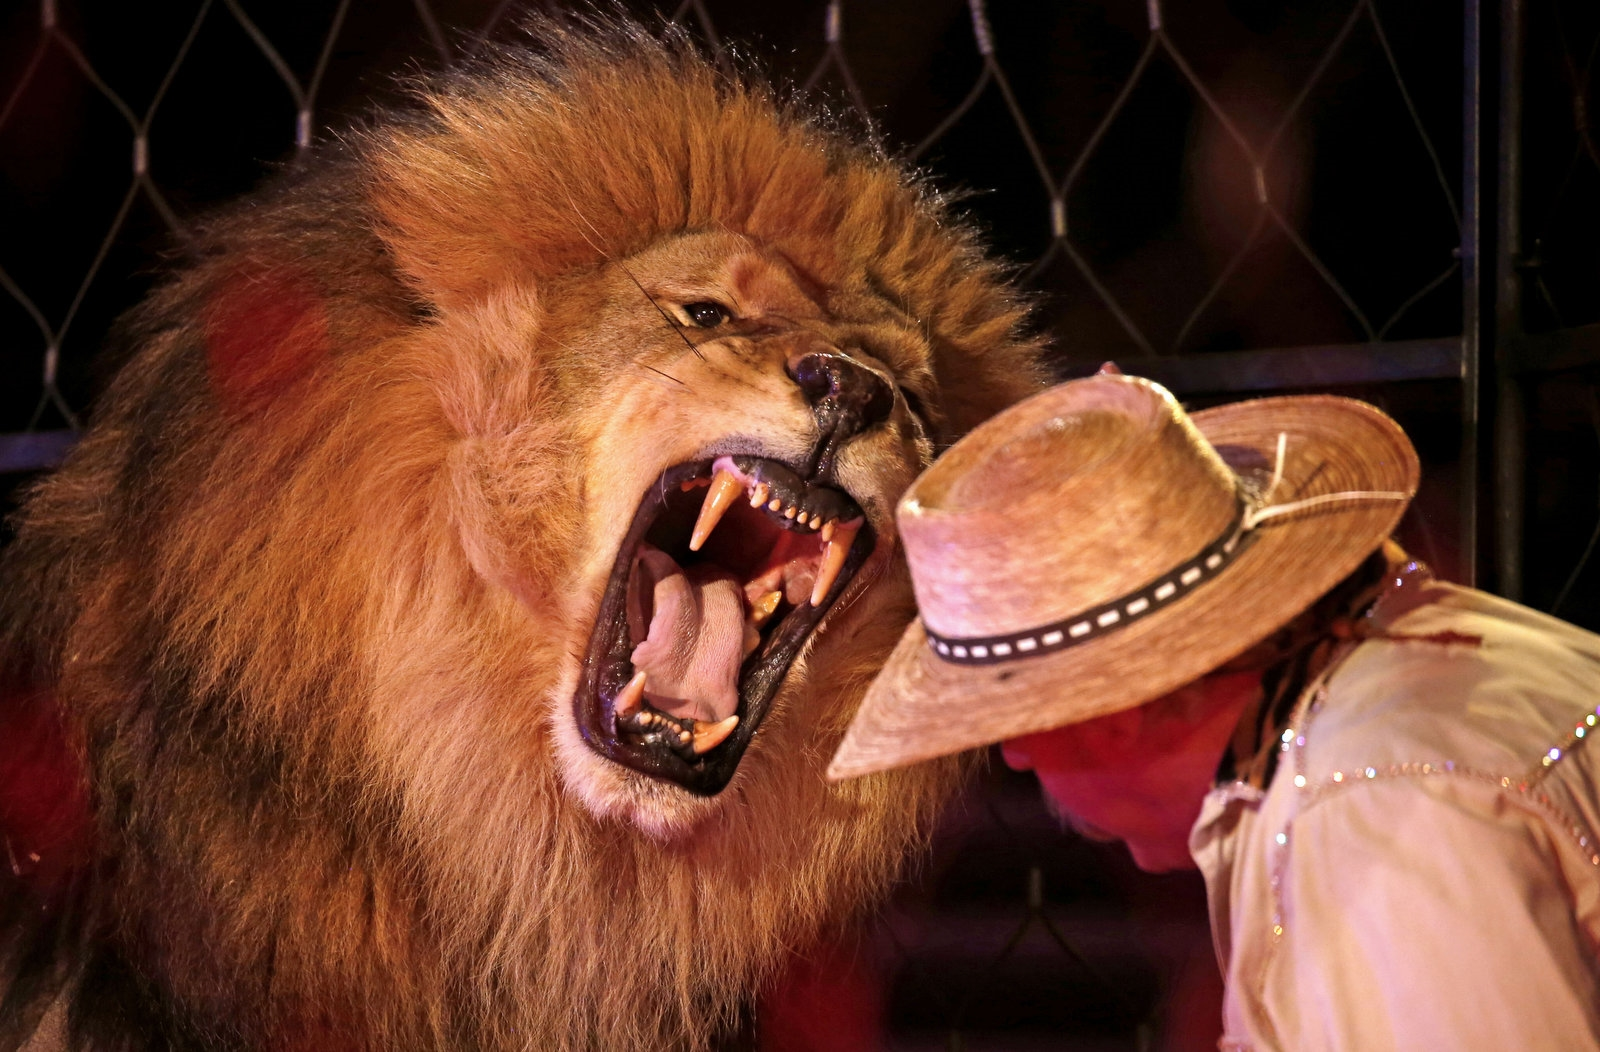 Lion tamer Vince Von Duke gets a closeup view of his lion's mighty roar.